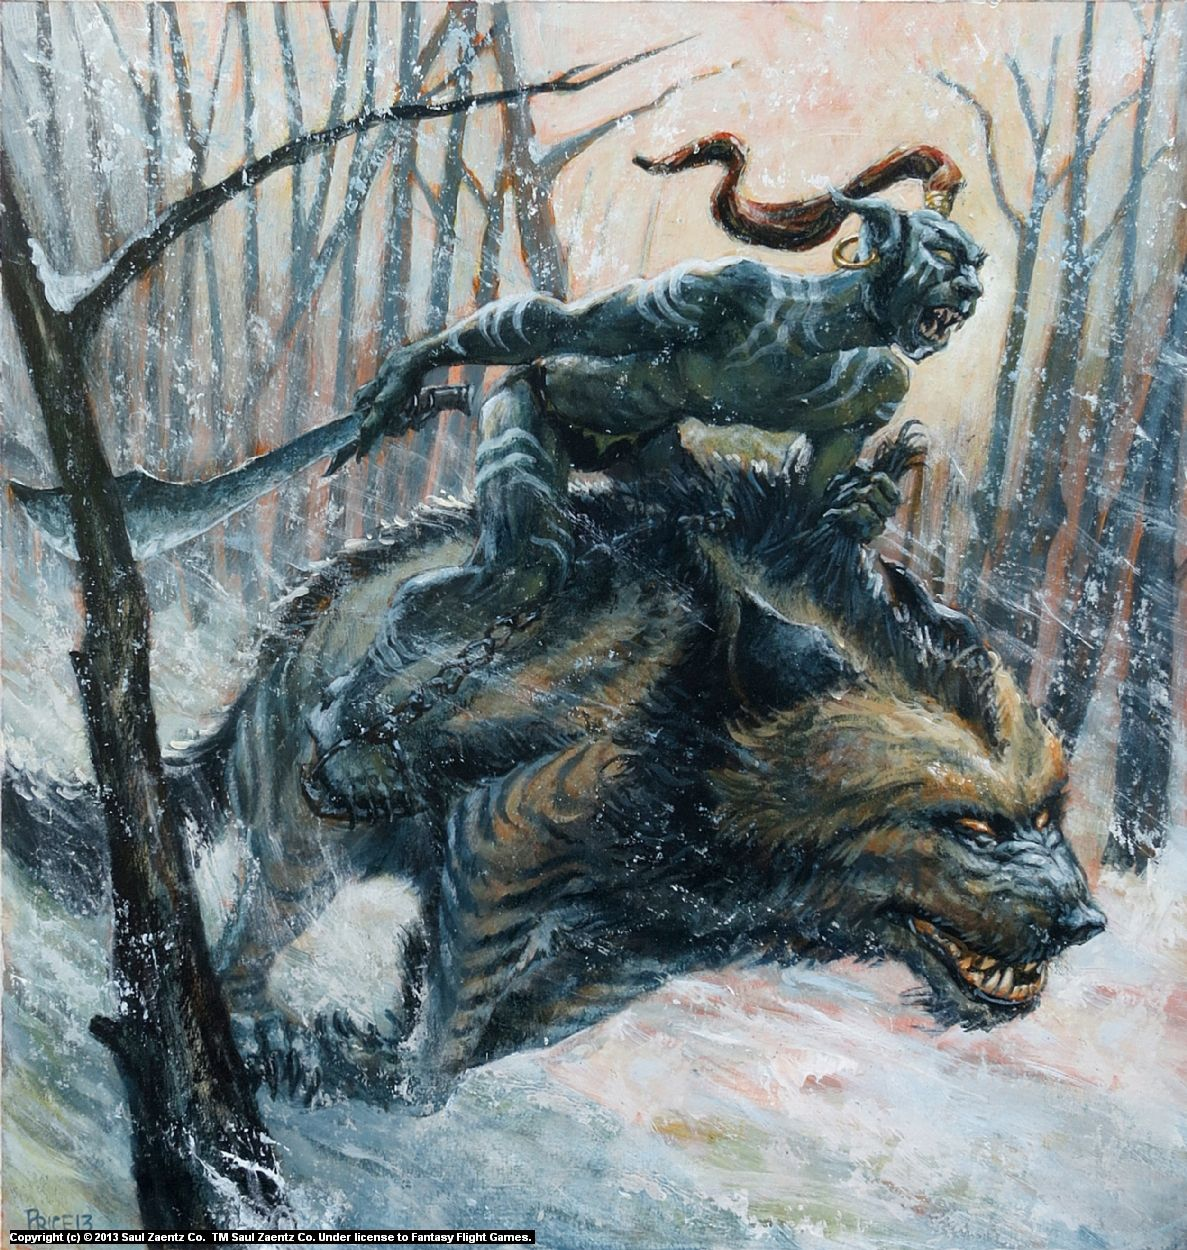 Infected By Art » Warg Rider by rick price » Infected By ... Warg Riders Drawings